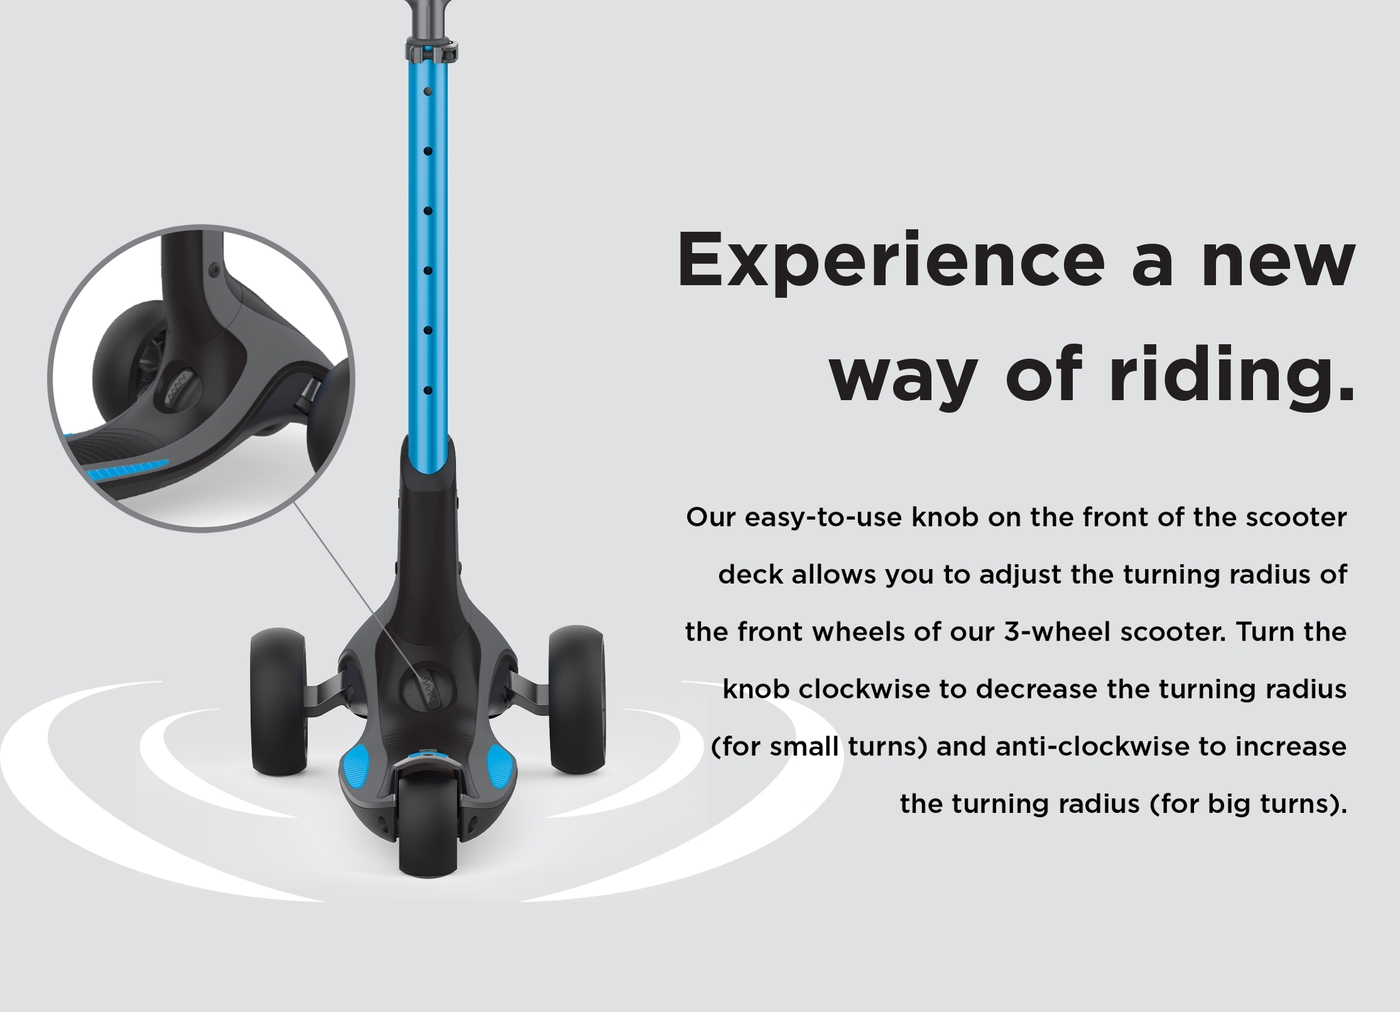 Experience a new way of riding.